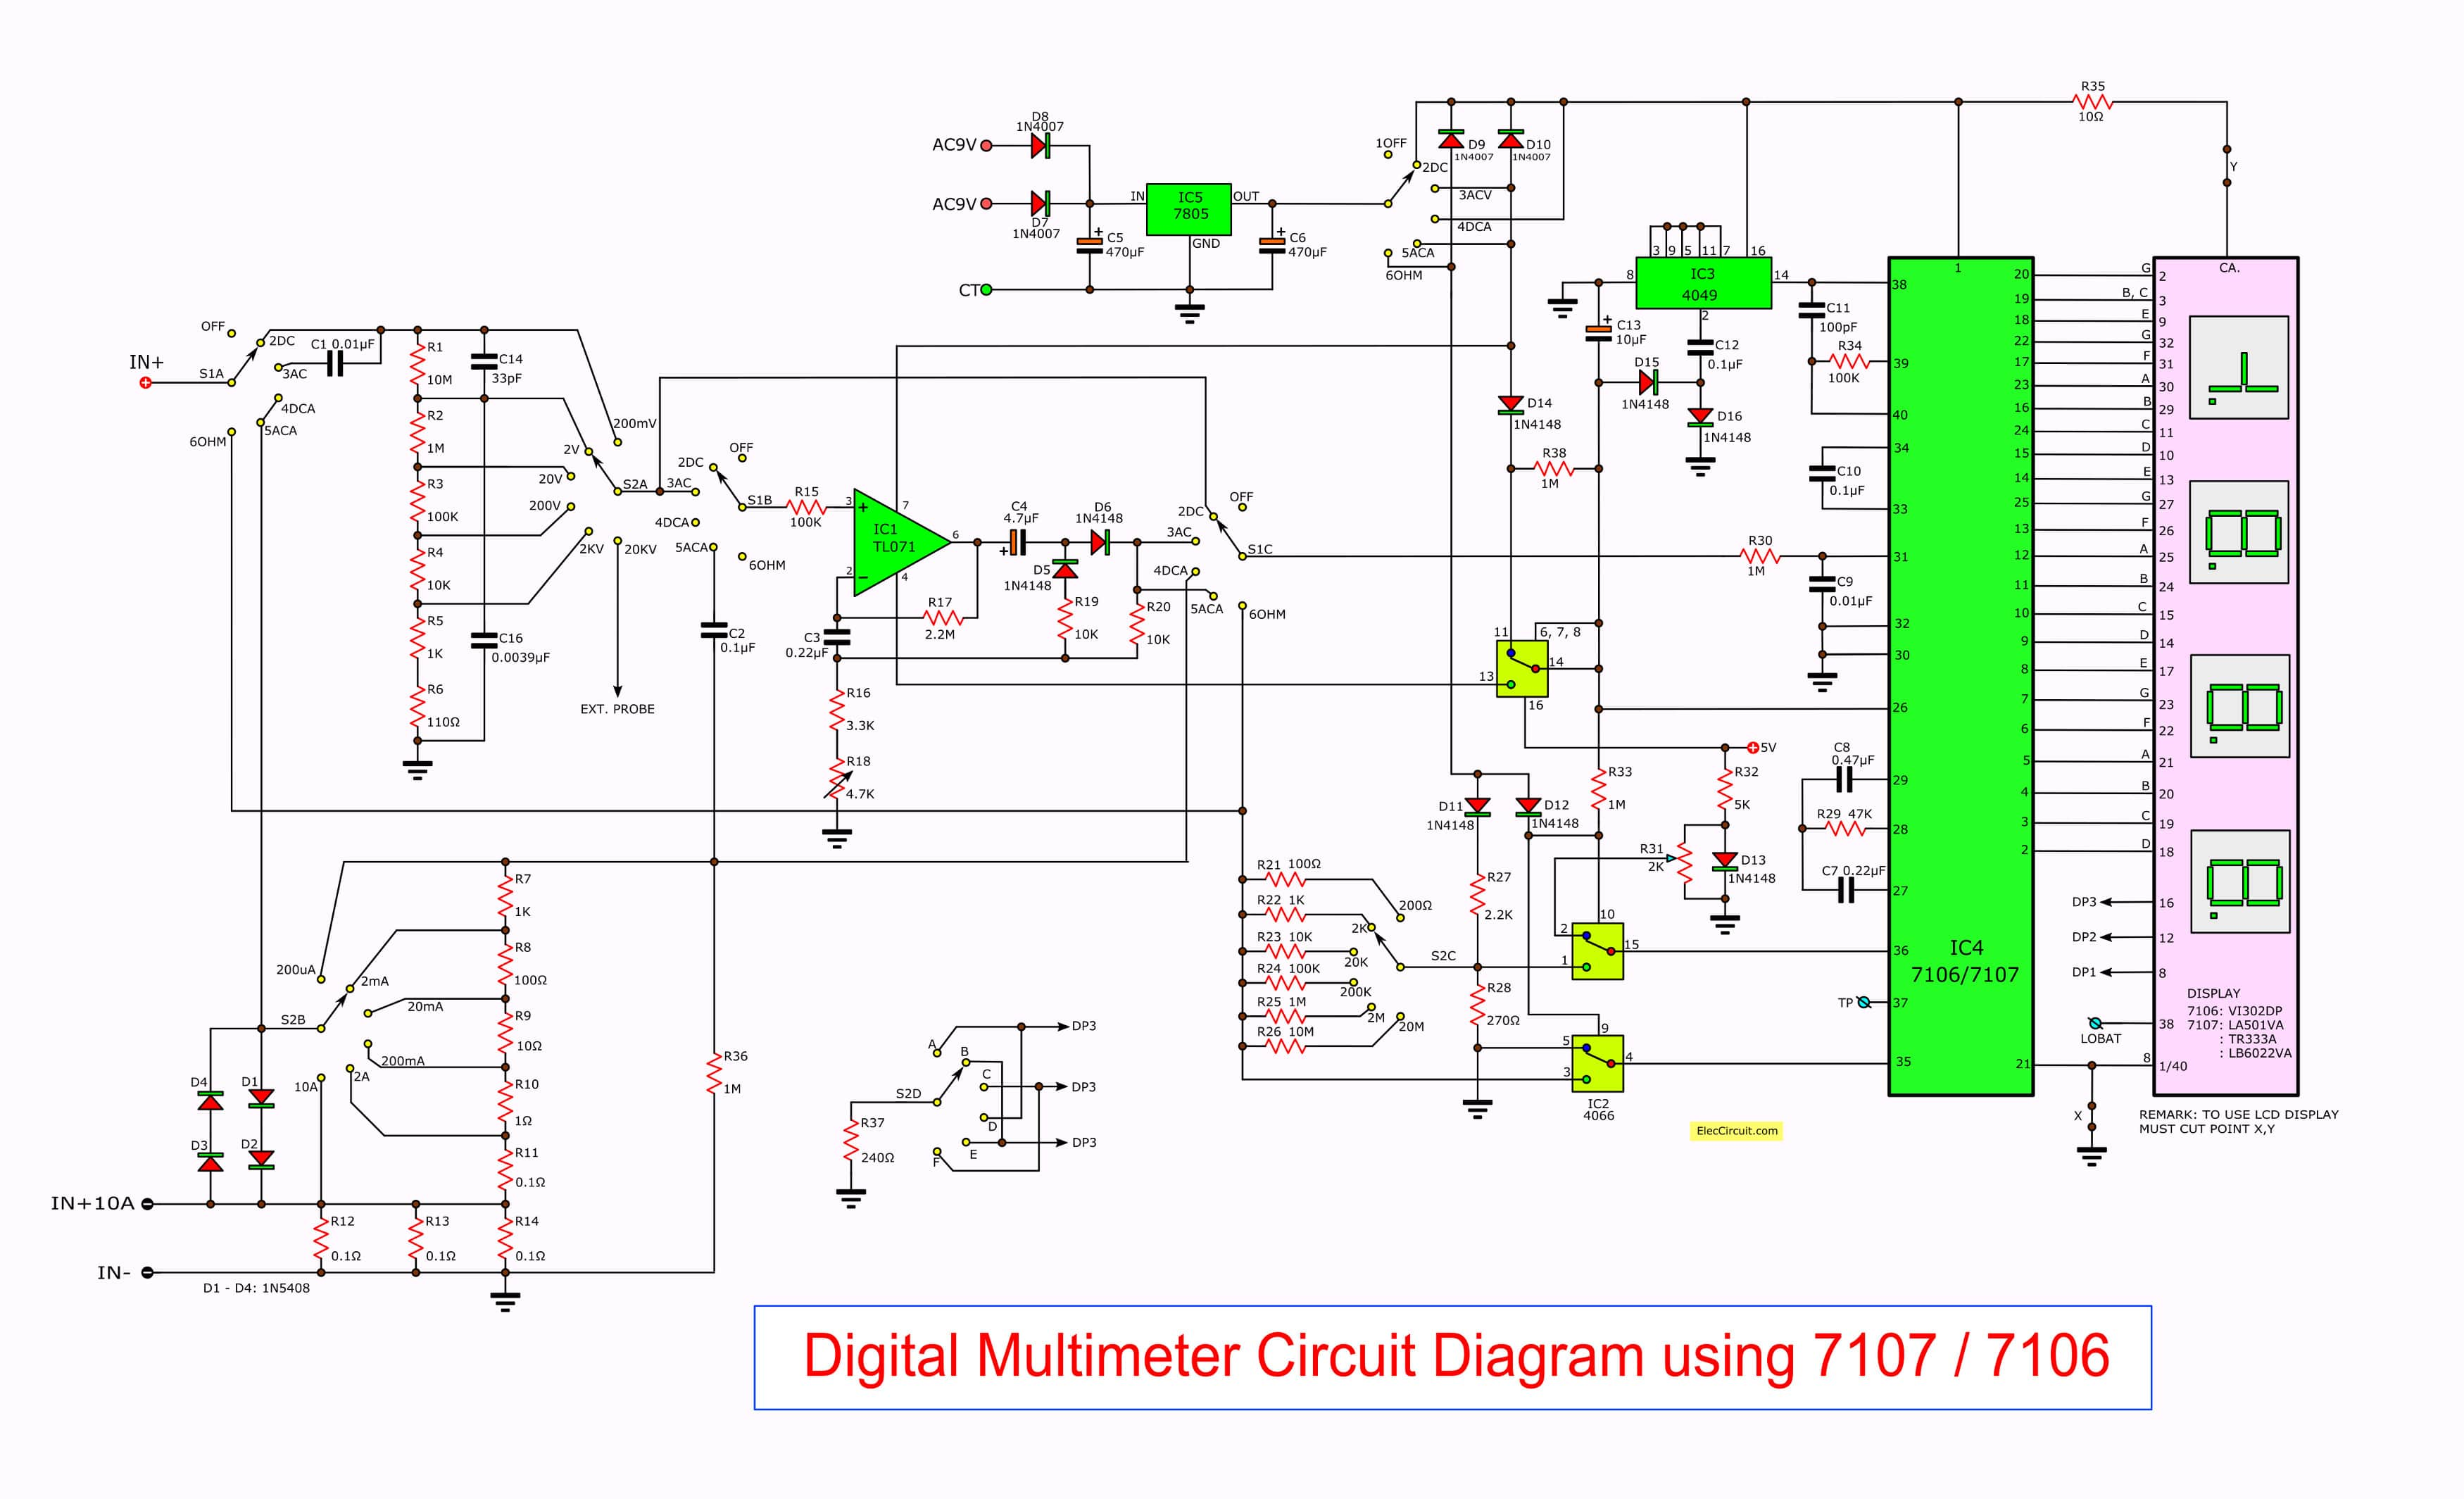 digital multimeter circuit using icl7107 the full circuit diagram of digital multimeter